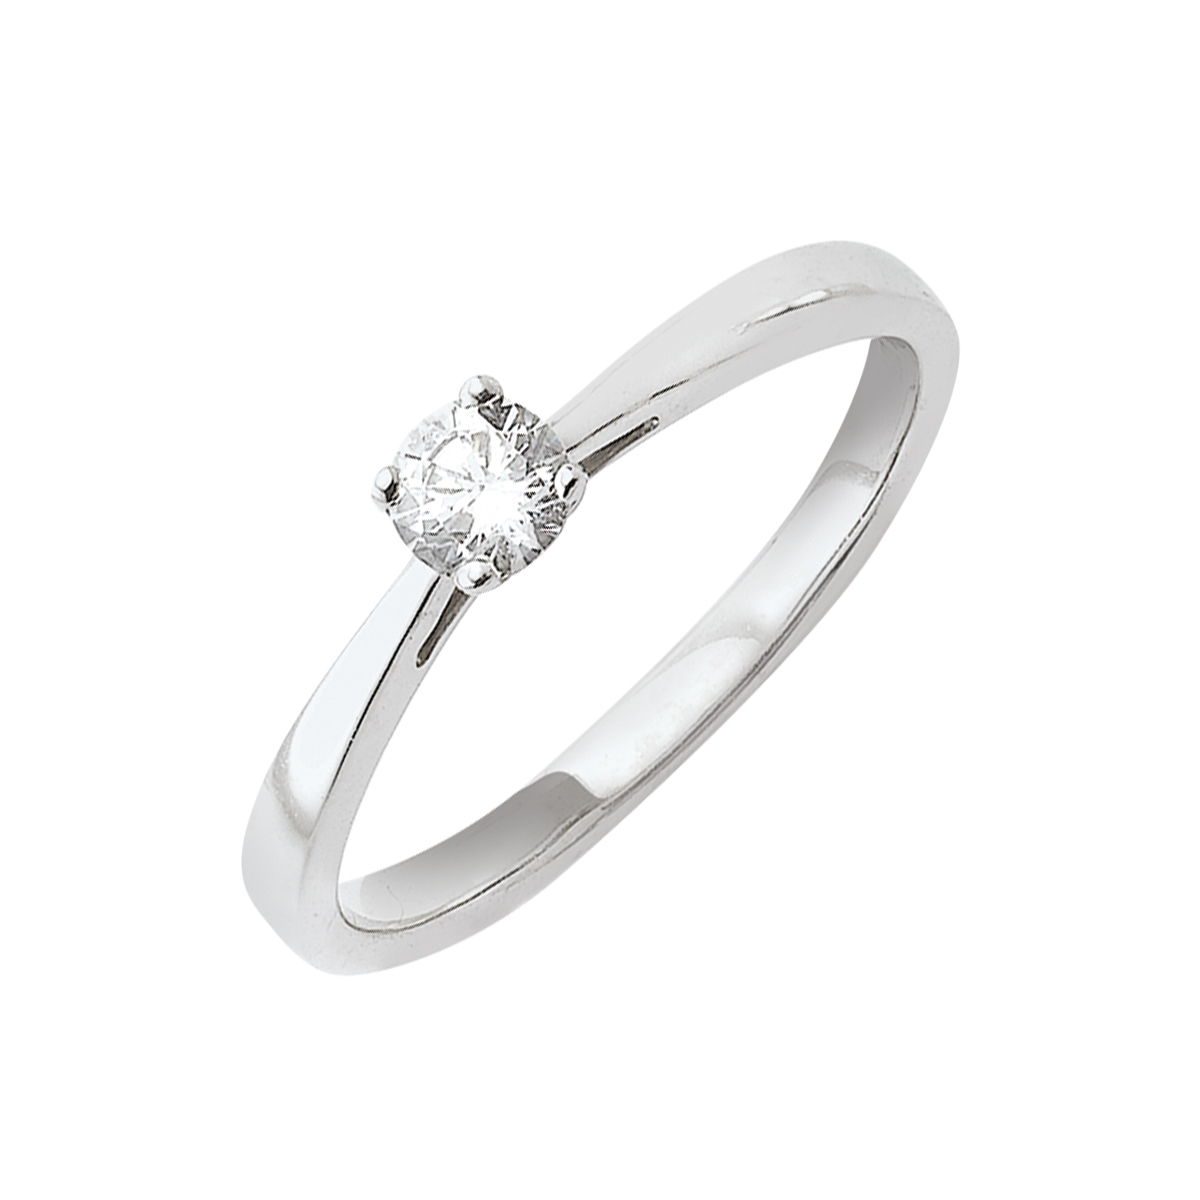 Solitaire or blanc - Diamant synthétique 0,25 carat